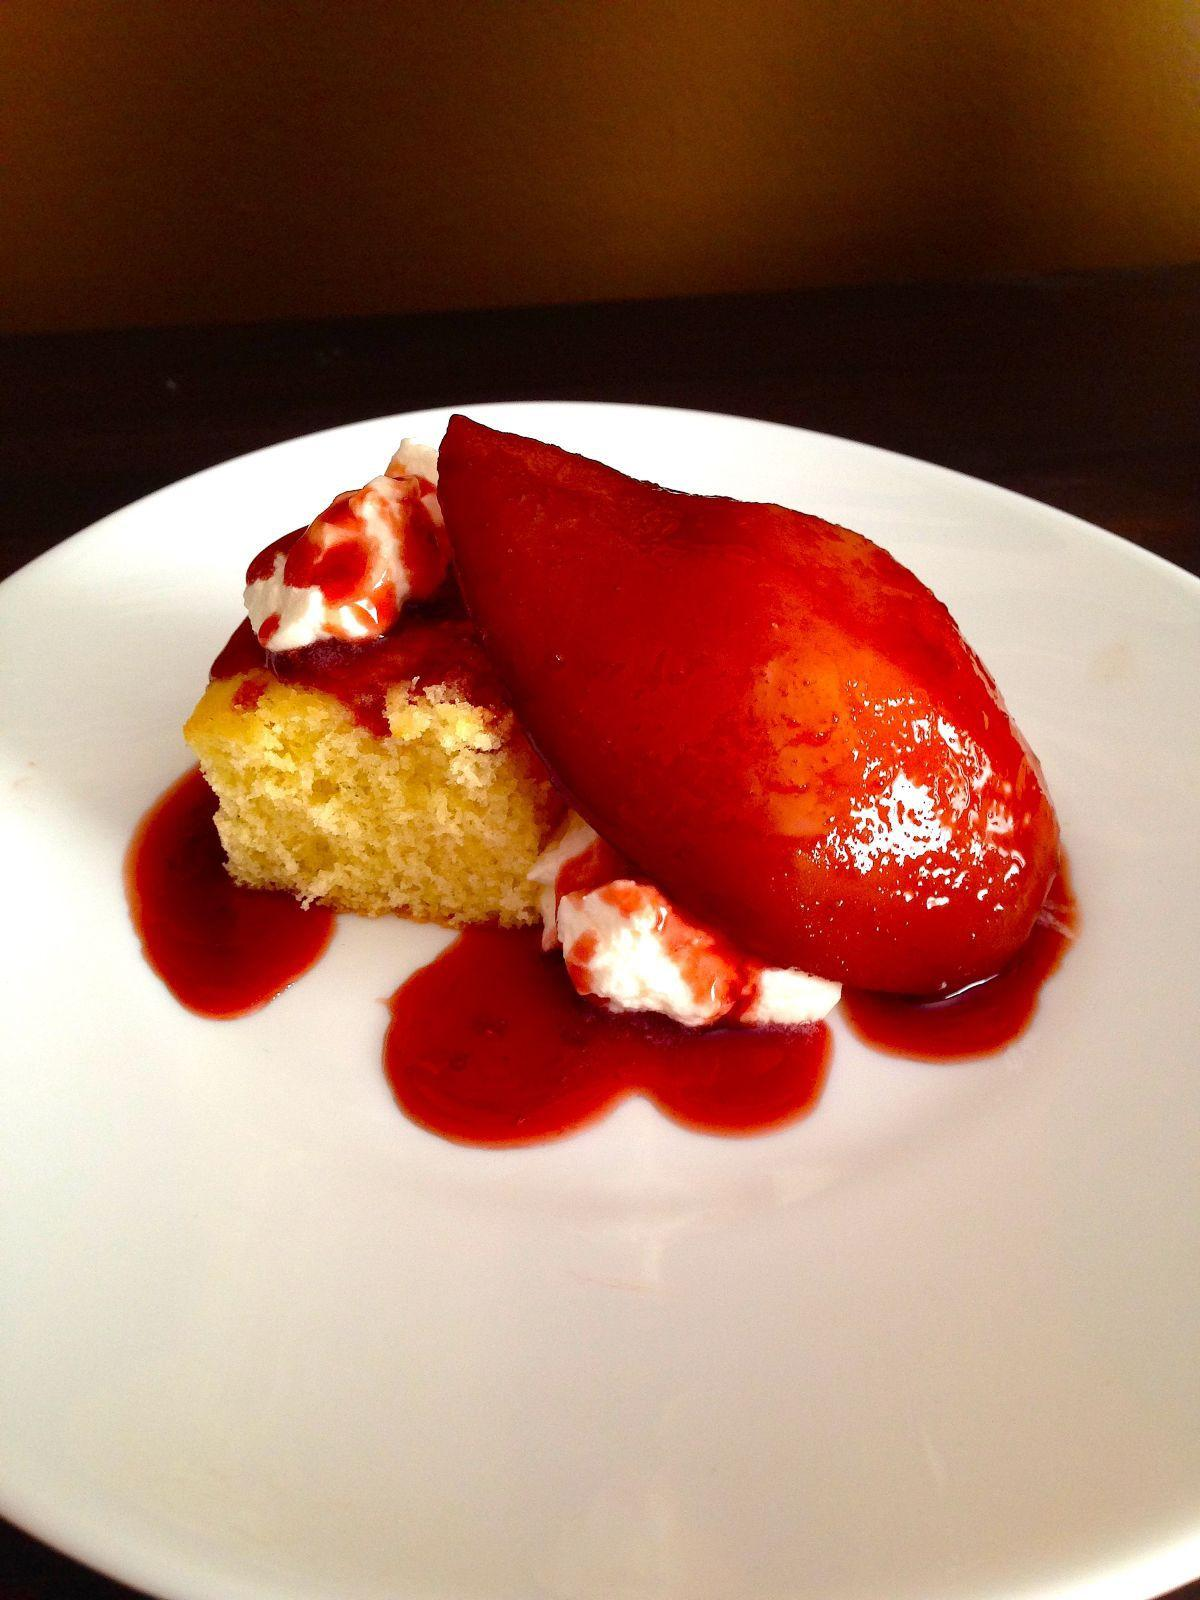 FRESH OFF THE FARM: Poached pears with a Victoria sponge cake by Claire Nines